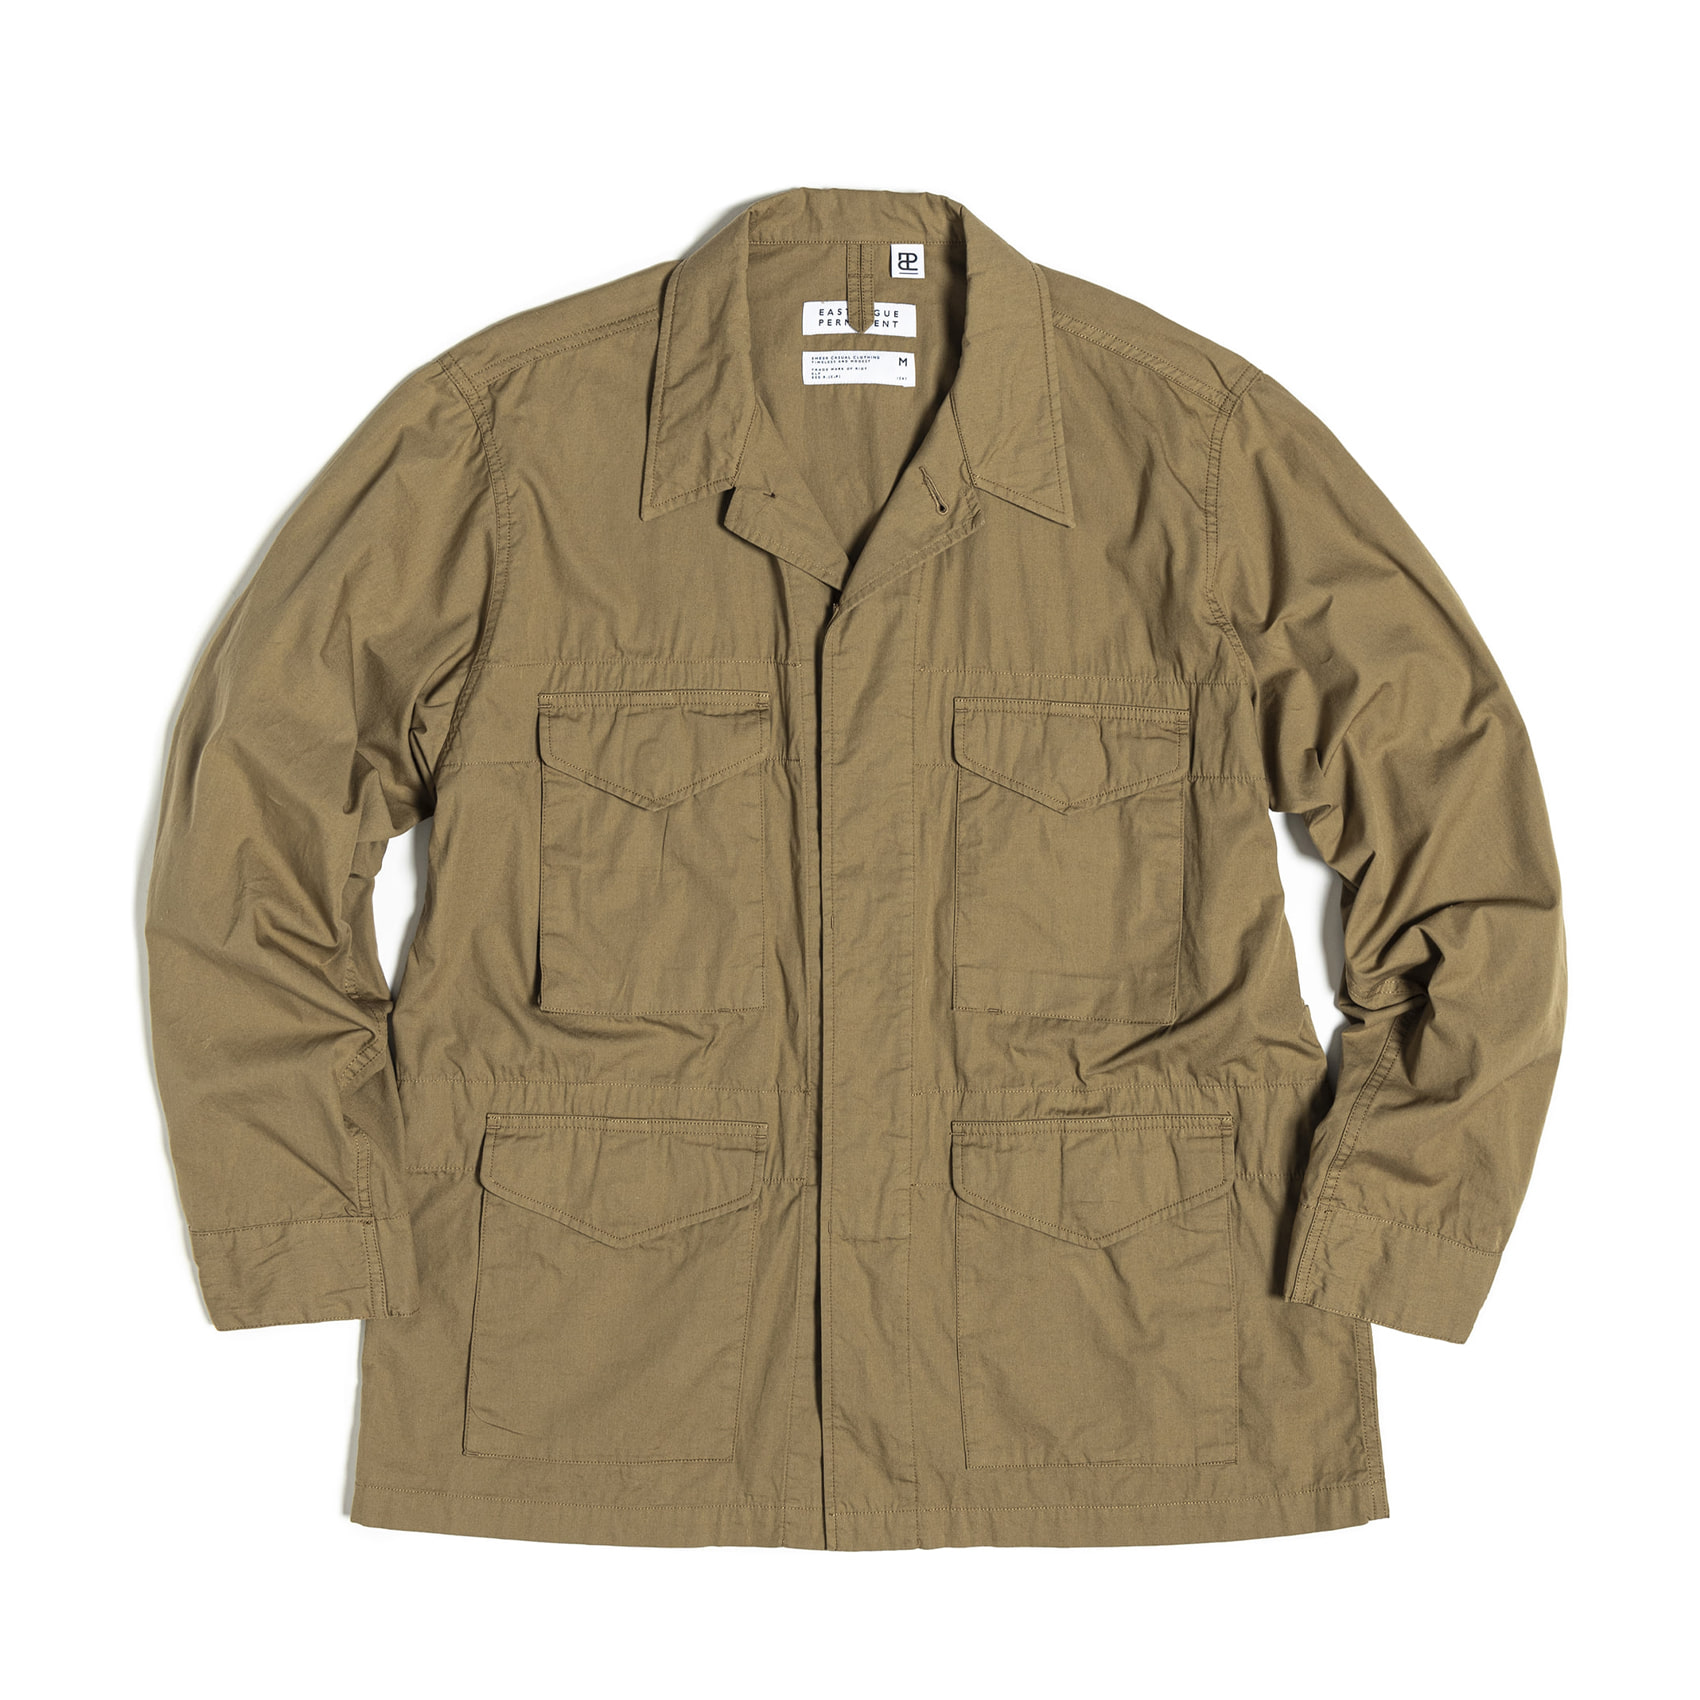 FIELD JACKET - BEIGE